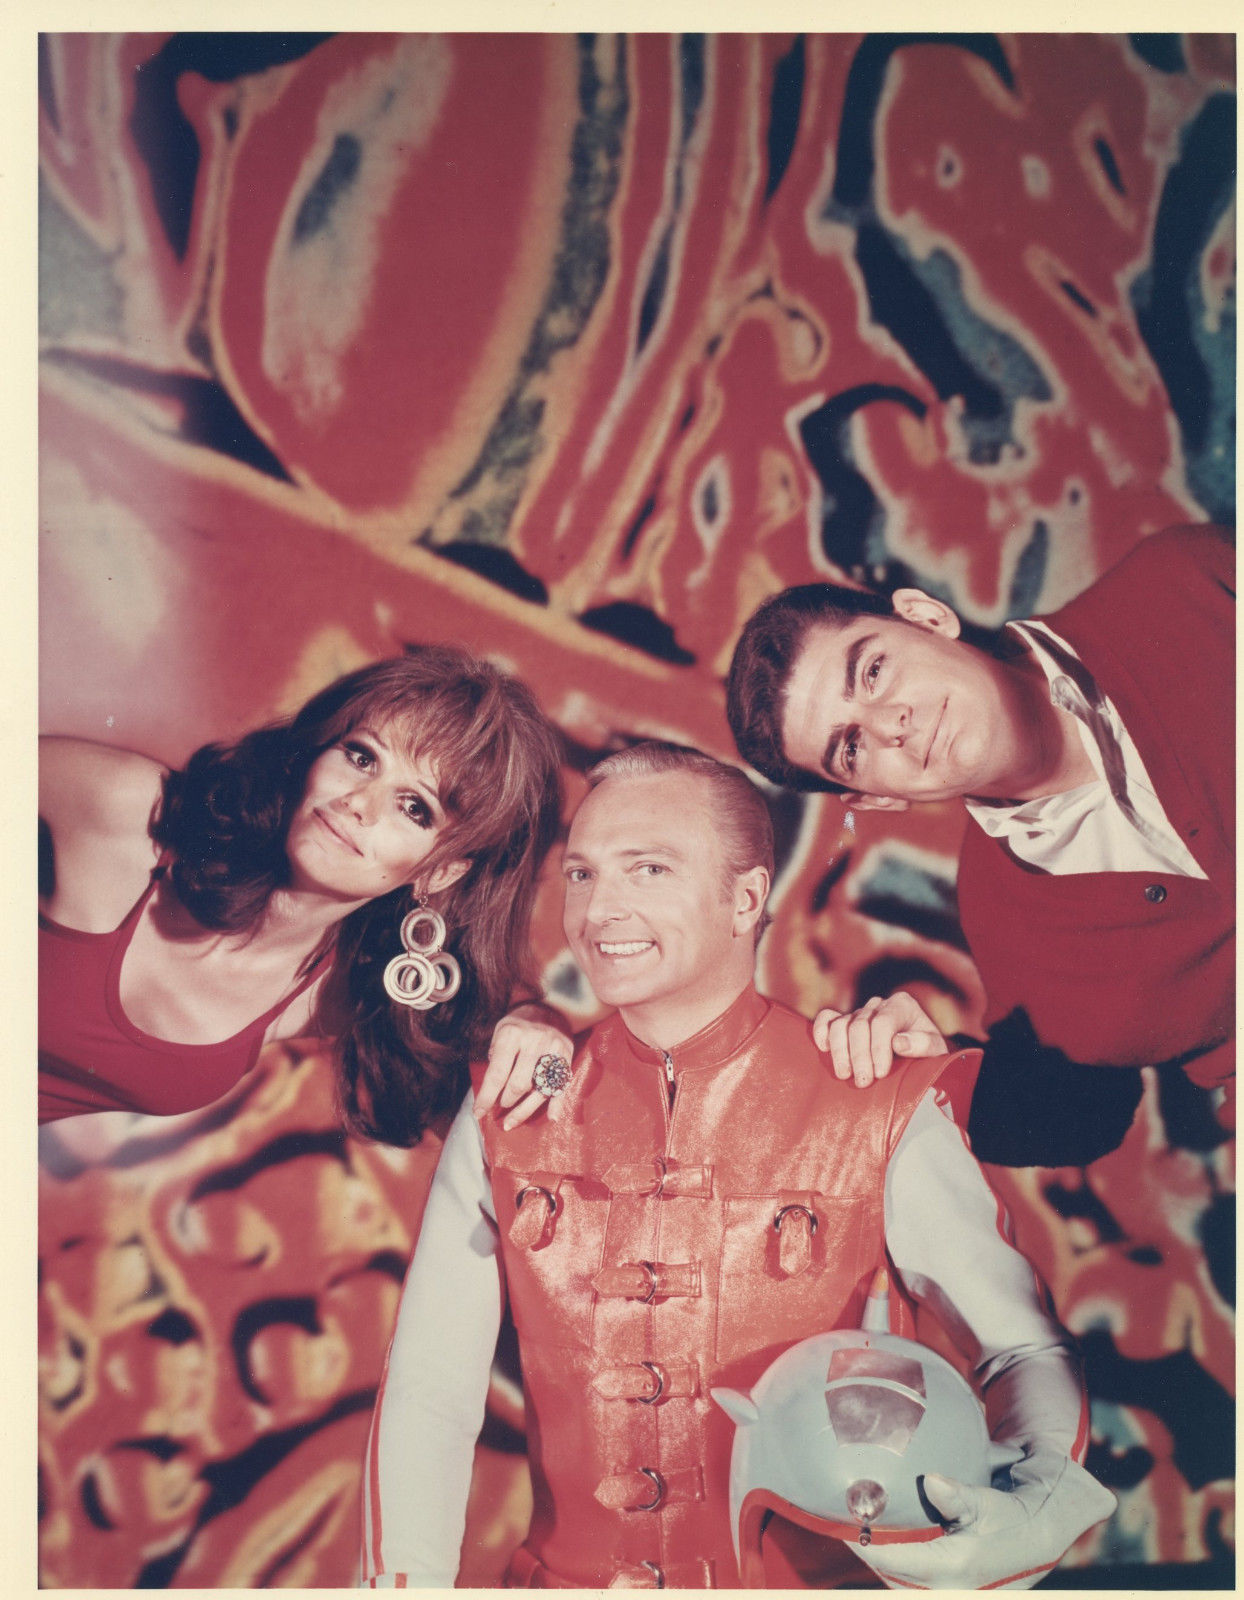 HE_AND_SHE_Paula_Prentiss_Richard_Benjamin_Jack_Cassidy_Original_7x9_photo_T4712